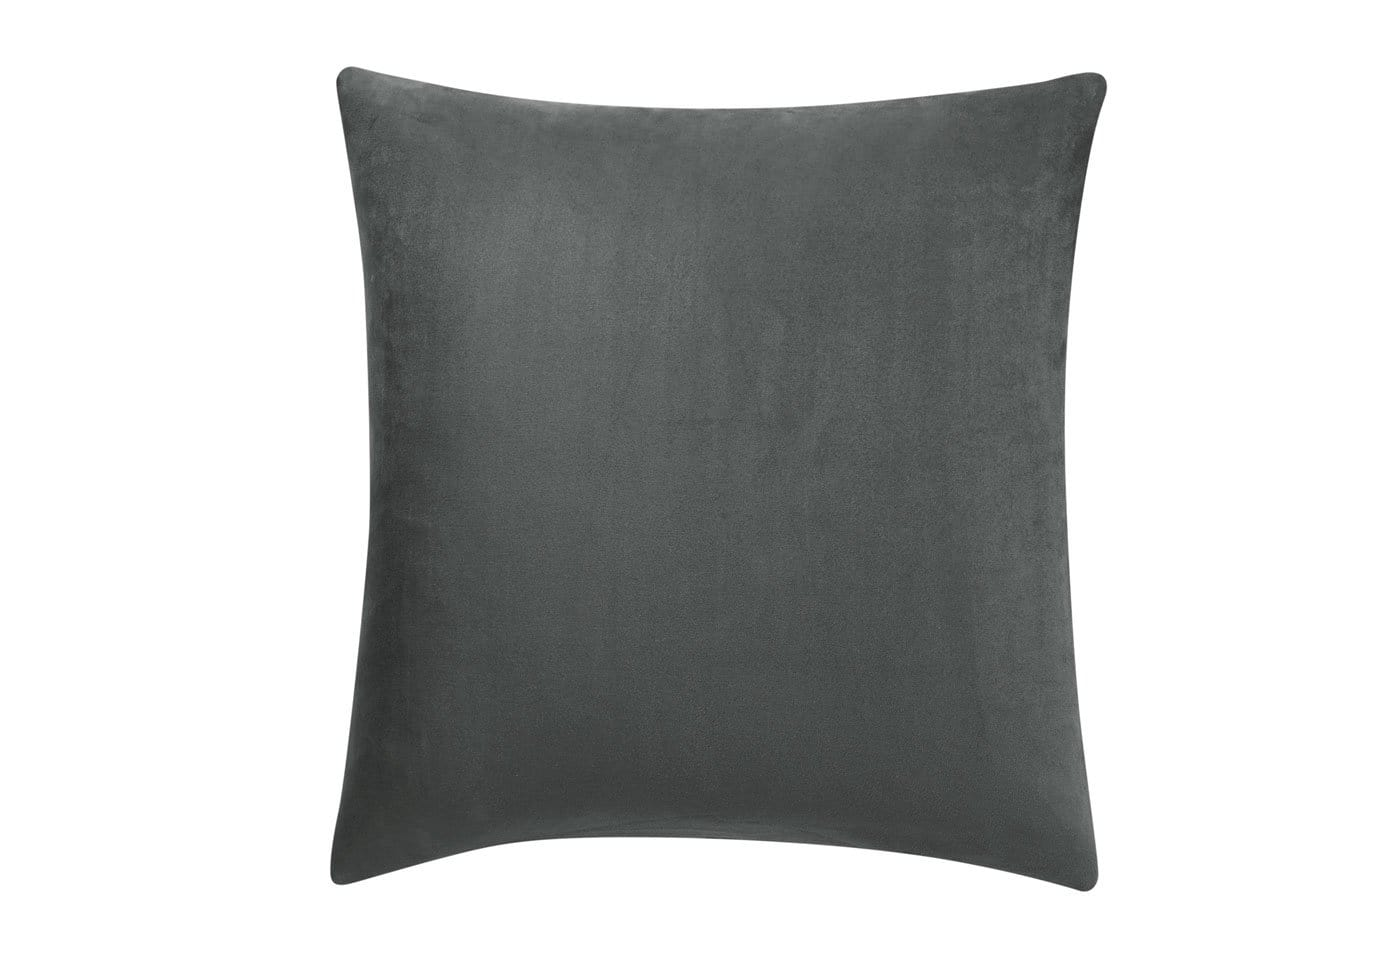 Stretch Suede 18 Inch Square Pillow Cover - 18x18 / Carbon Gray